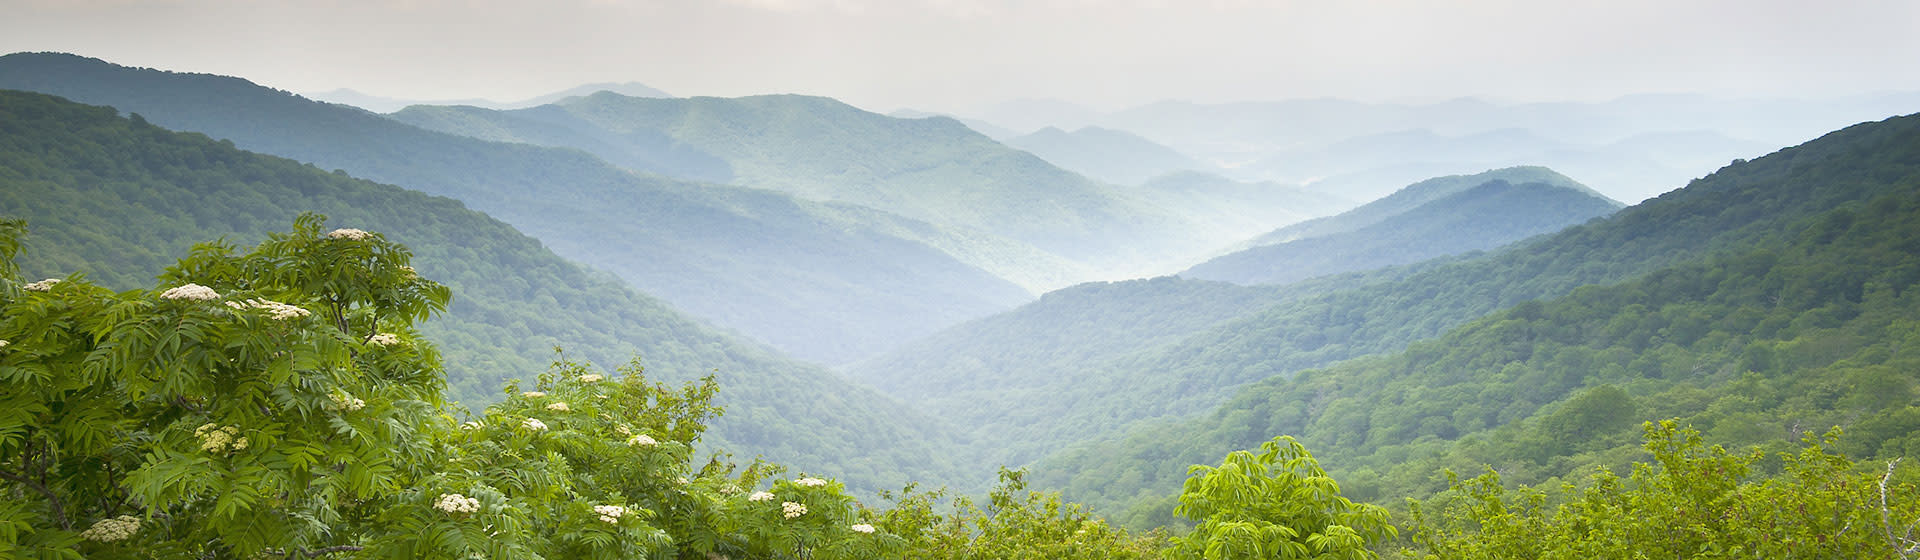 Asheville's Craggy Mountains Overlook in Spring